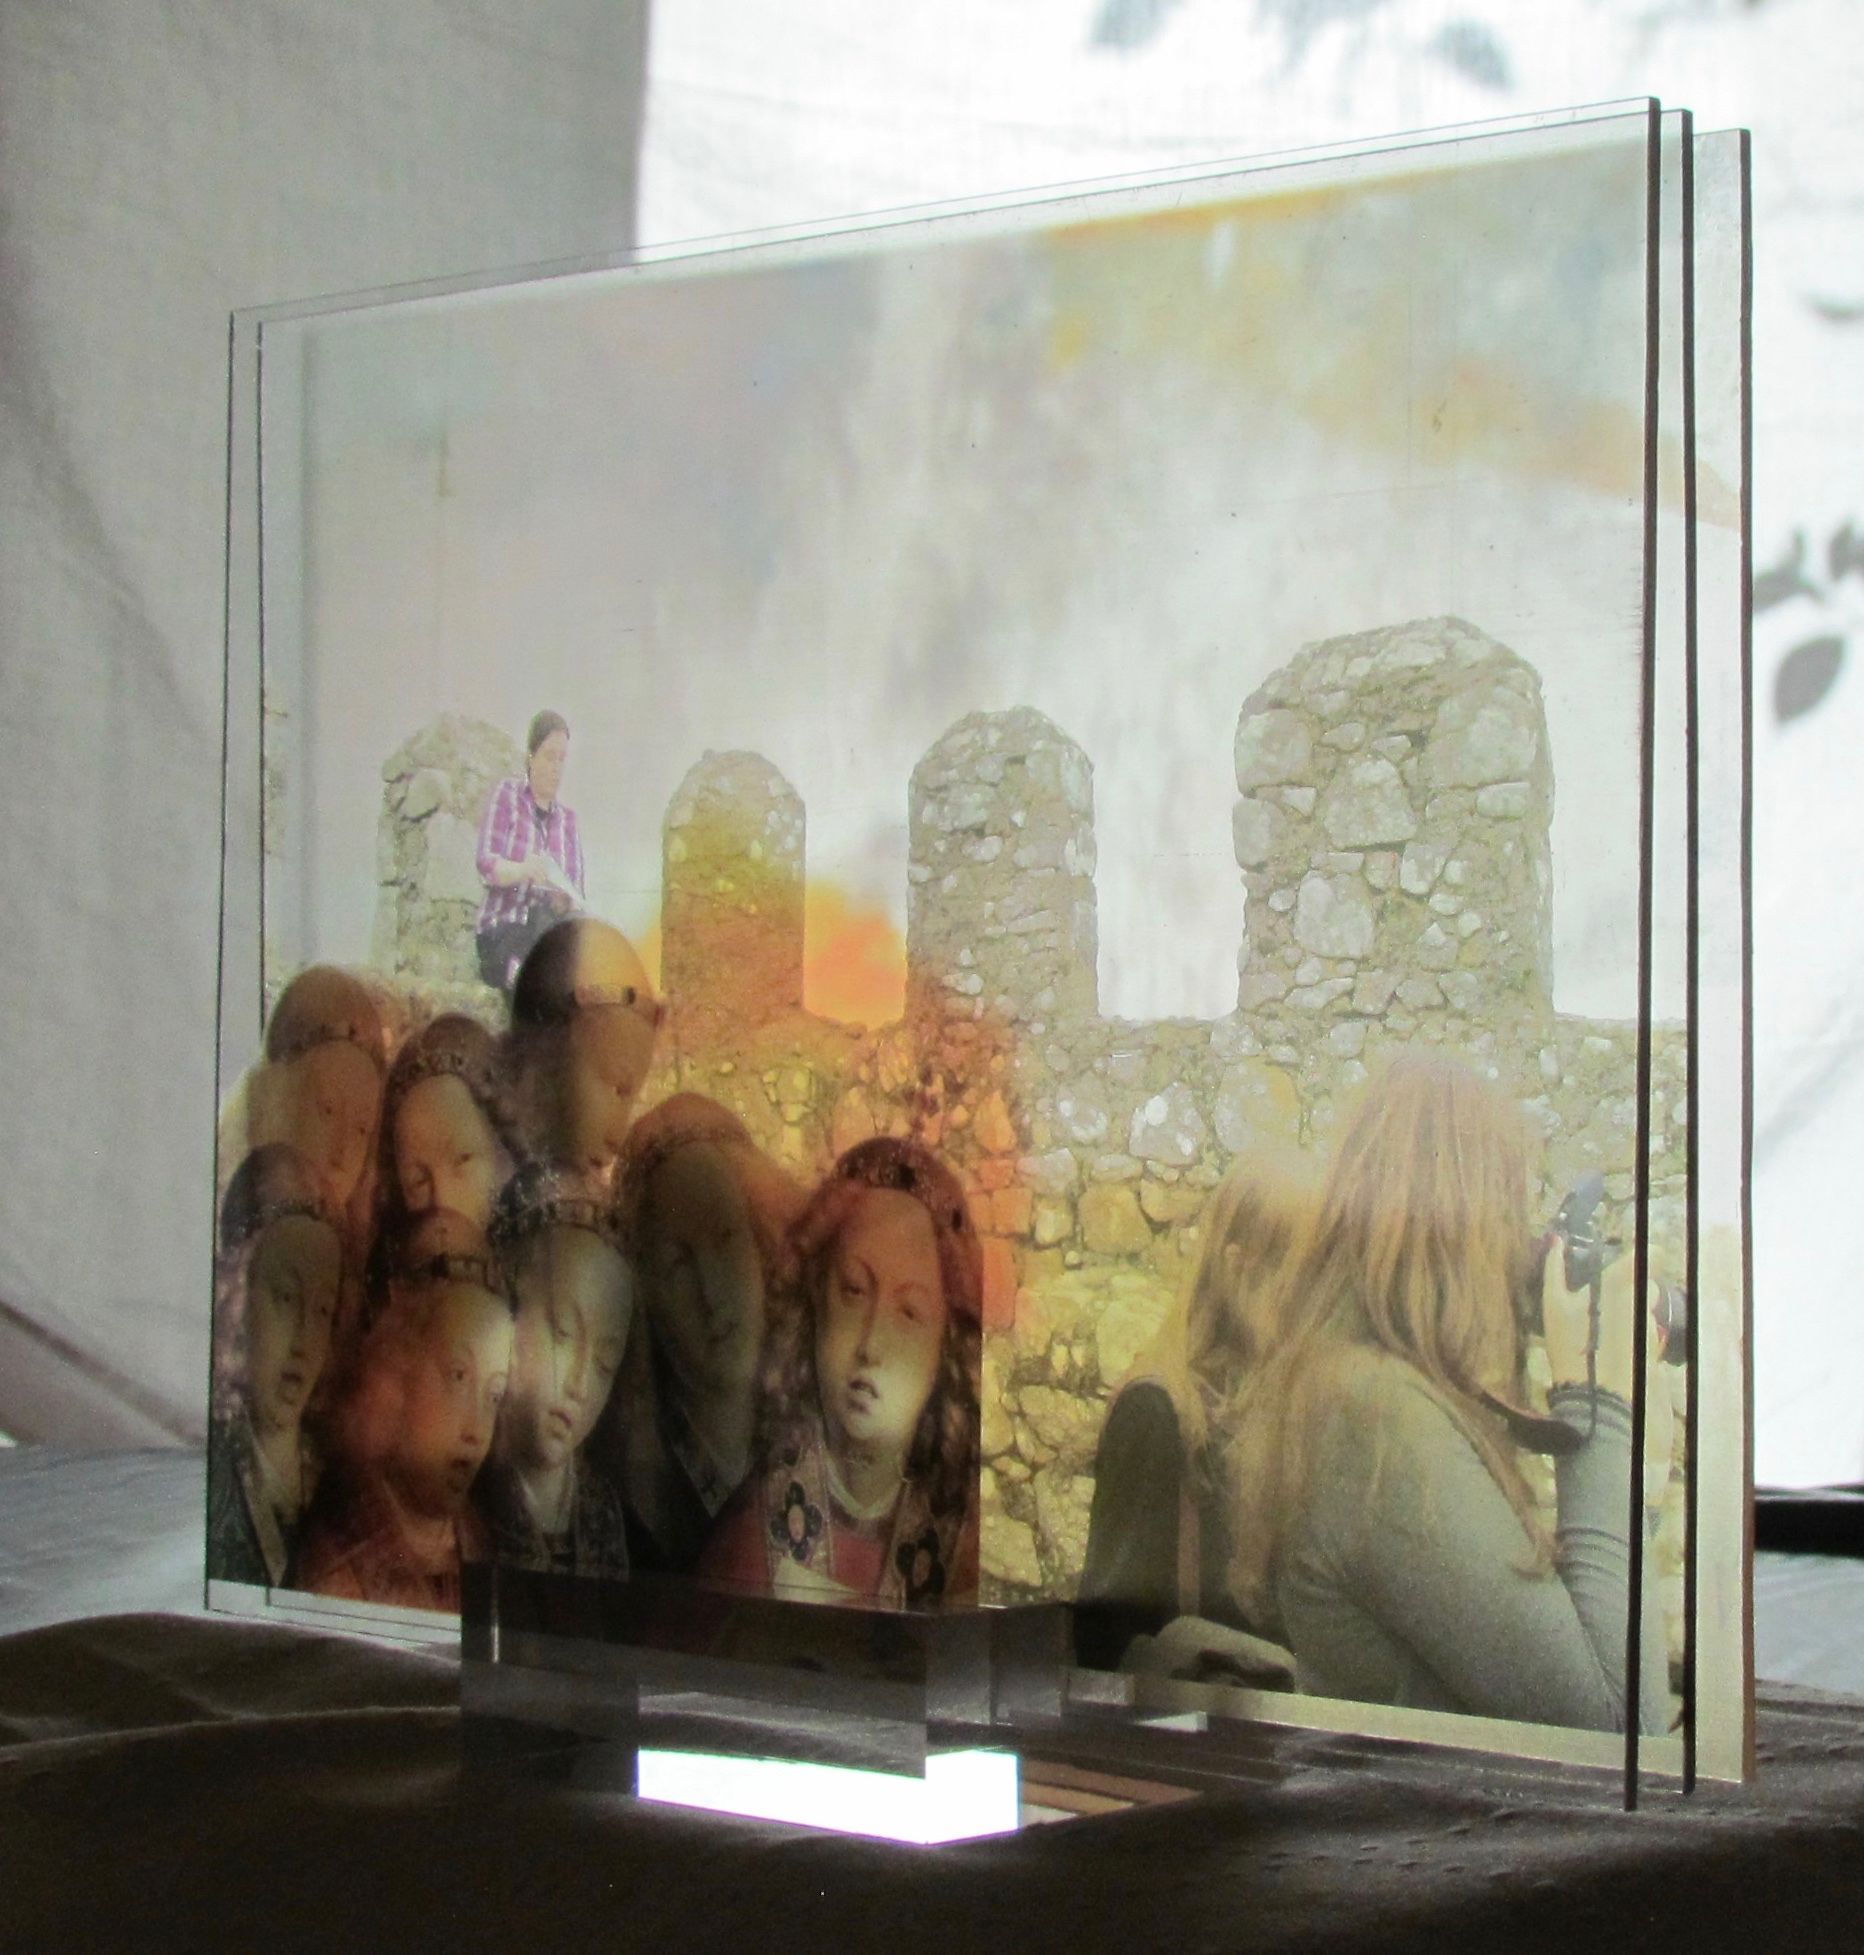 3d Uv Printing On Transparent Acrylic Sheets Spaced And Mounted On Acrylic Block Inspired By 2d Series Music Monuments Of Coll Painting Prints Art Display